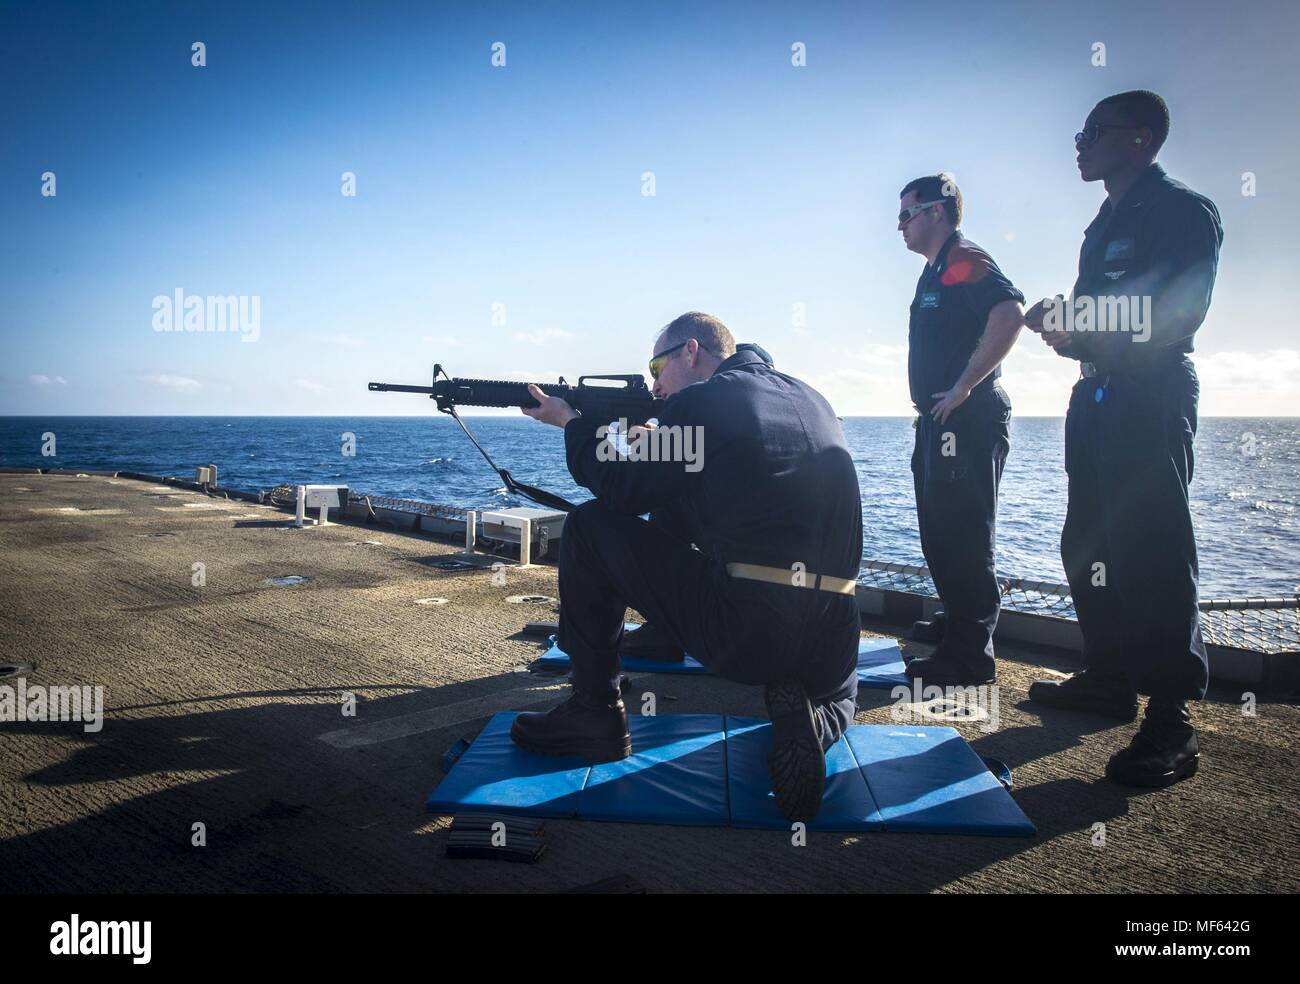 170109-N-BL607-145 ATLATIC OCEAN (Jan. 9, 2017) Sailors assigned to the guided-missile cruiser USS Monterey (CG 61) fire the M-16 rifle during a small arms qualification, January 9, 2017. Monterey, deployed as part of the Eisenhower Carrier Strike Group, is conducting naval operations in the U.S. 6th Fleet area of operations in support of U.S. national security interests in Europe. (U.S. Navy photo by Mass Communication Specialist 2nd Class William Jenkins). () Stock Photo